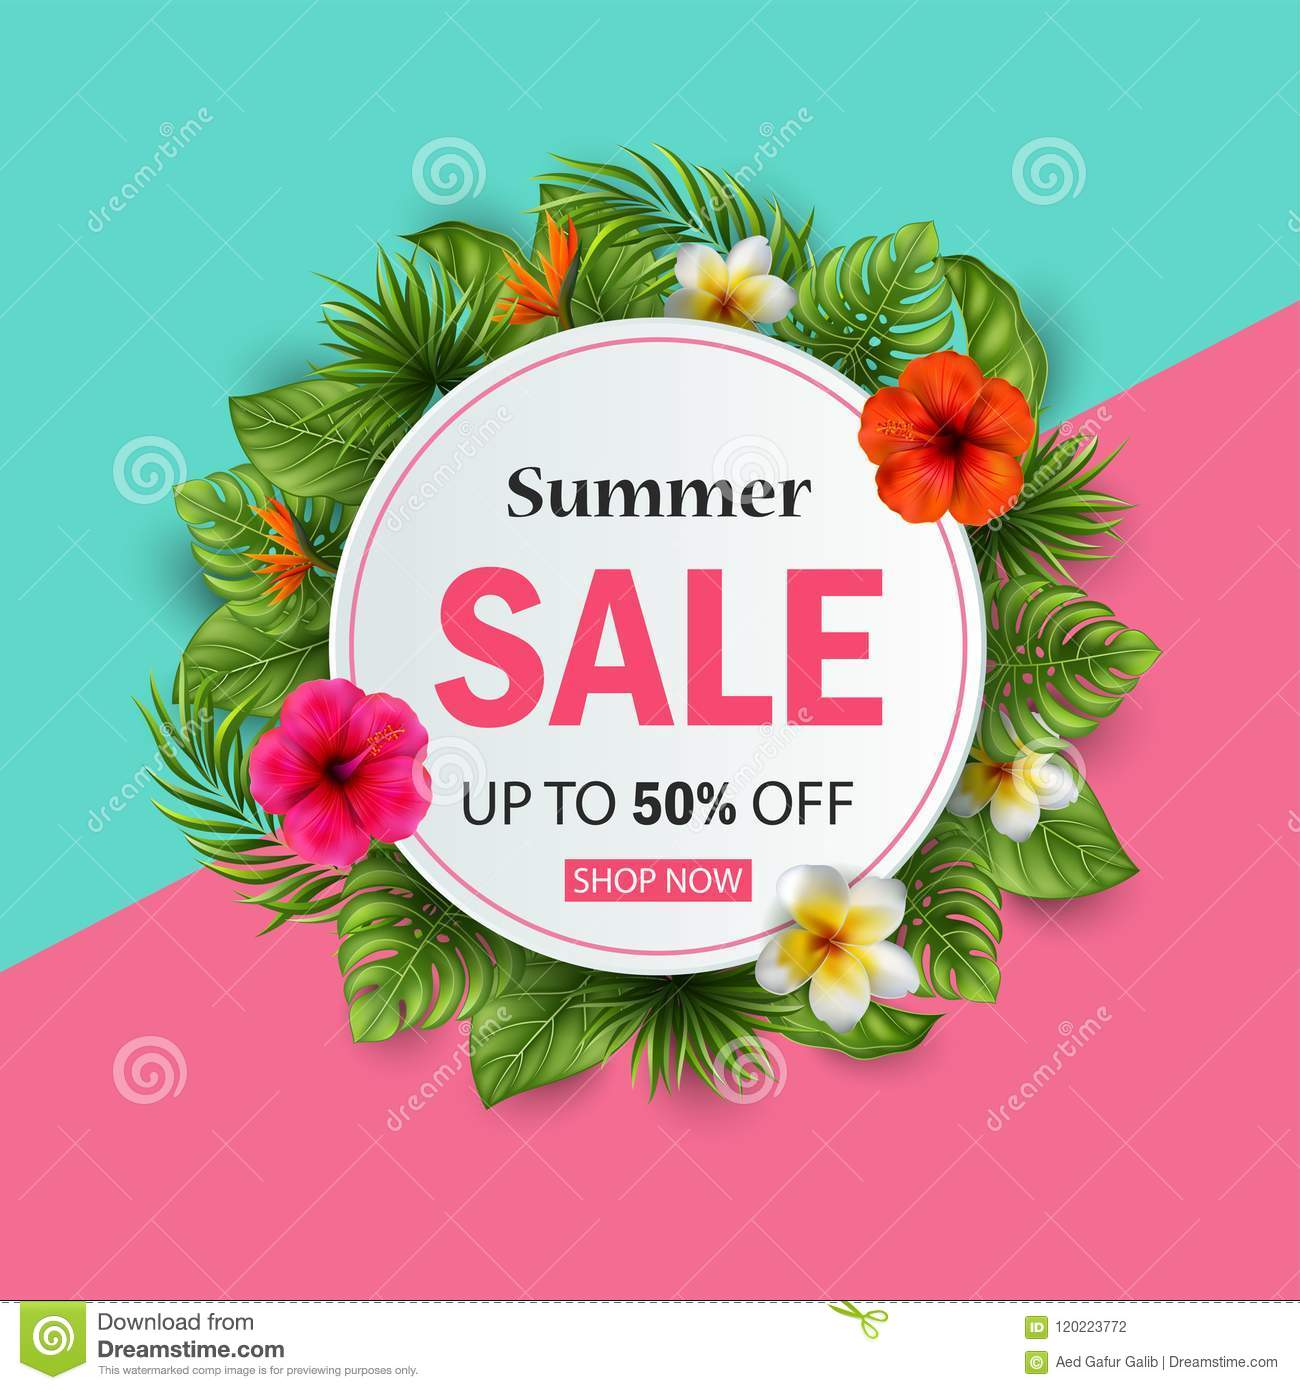 Summer Sale Banner With Tropical Flowers And Leaves For Promotion